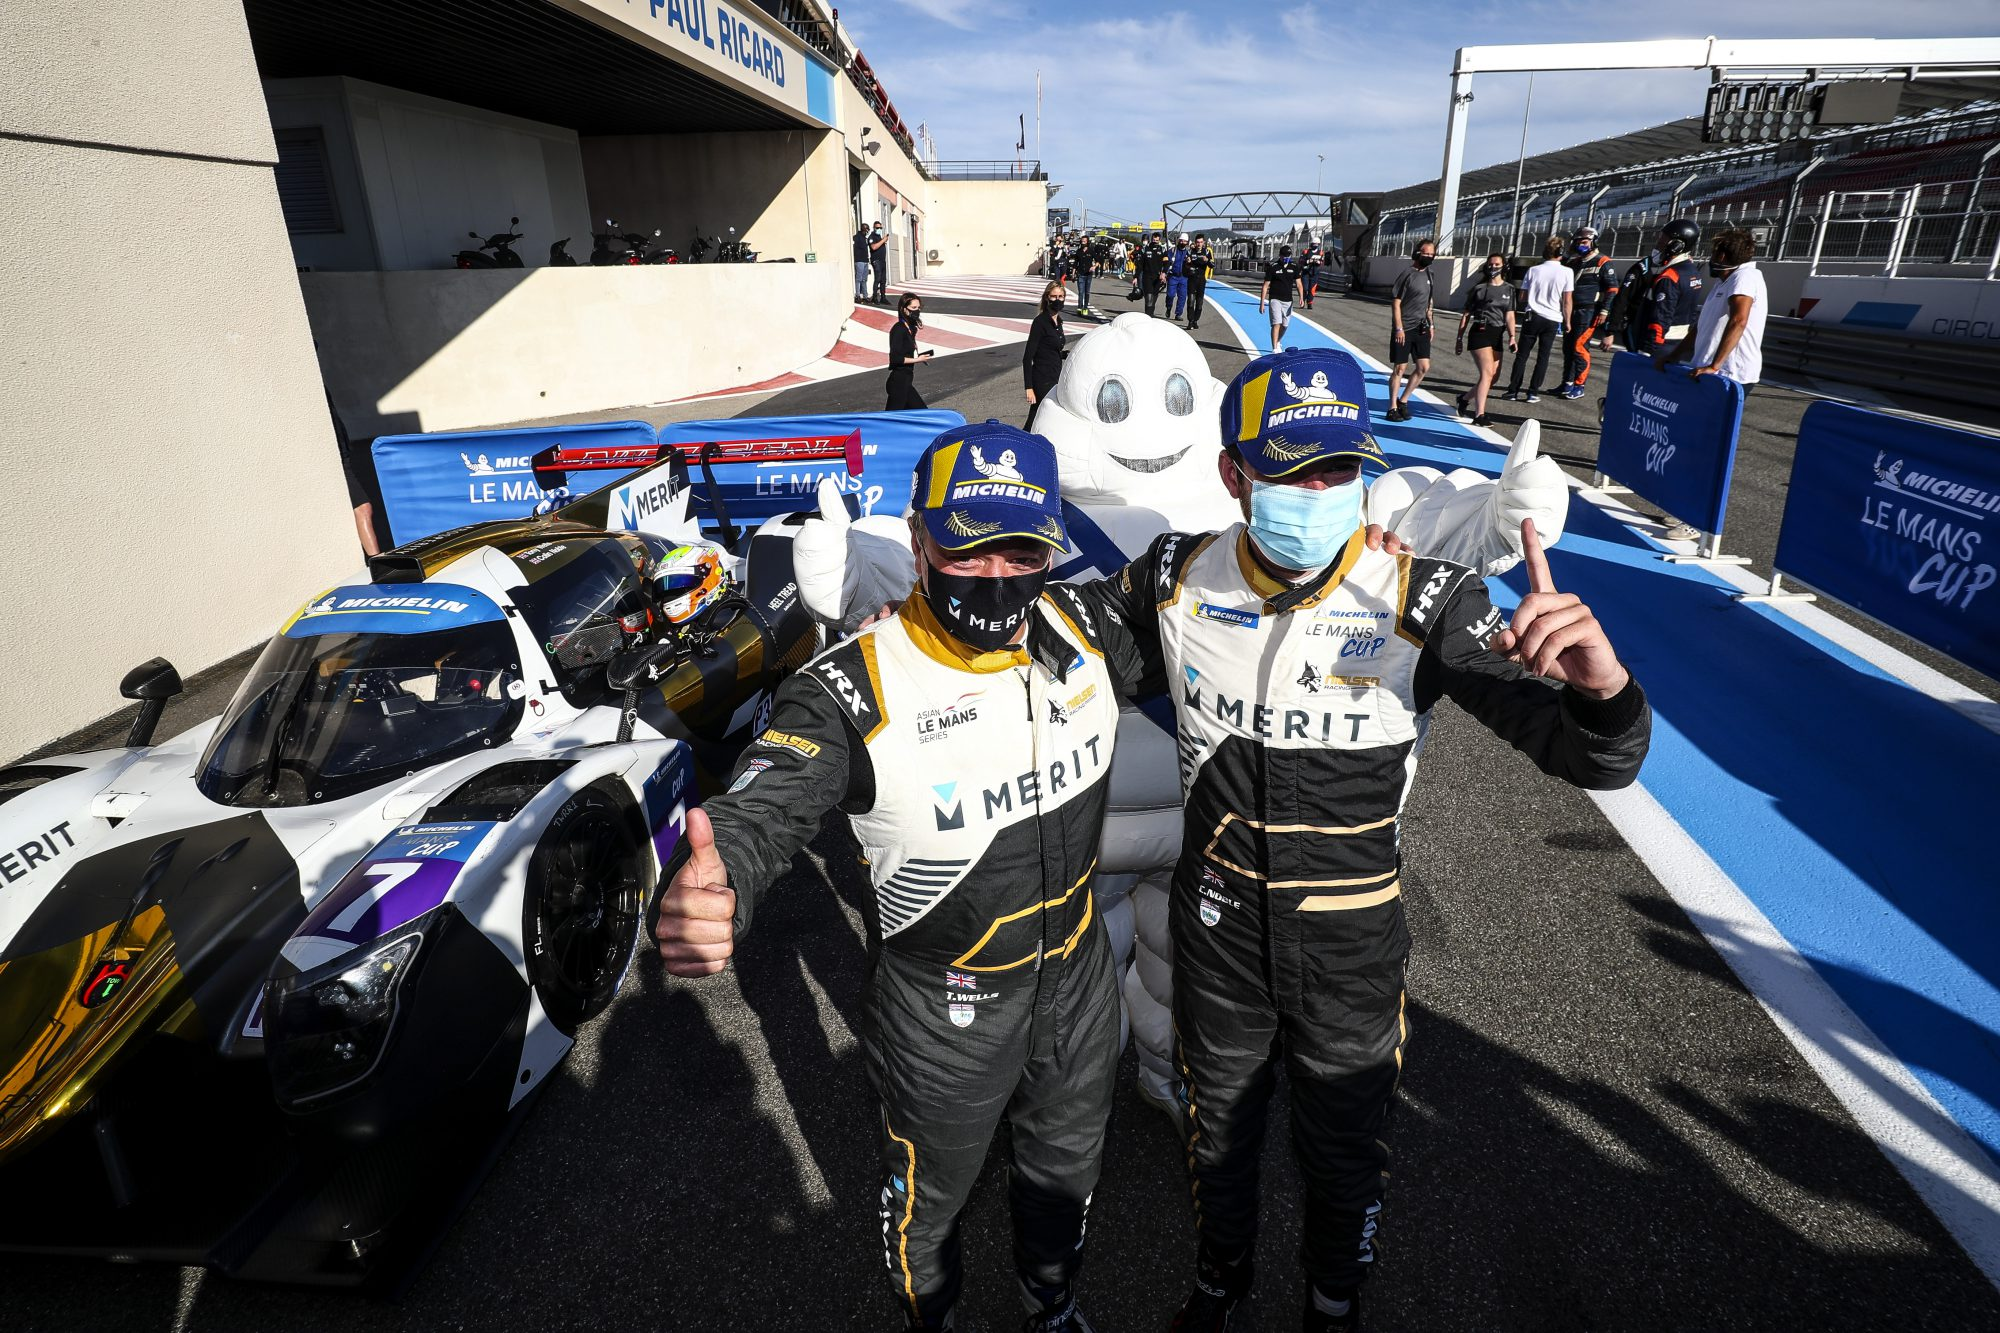 Nielsen Racing 7 - Wells and Noble shine in Le Mans Cup at Monza